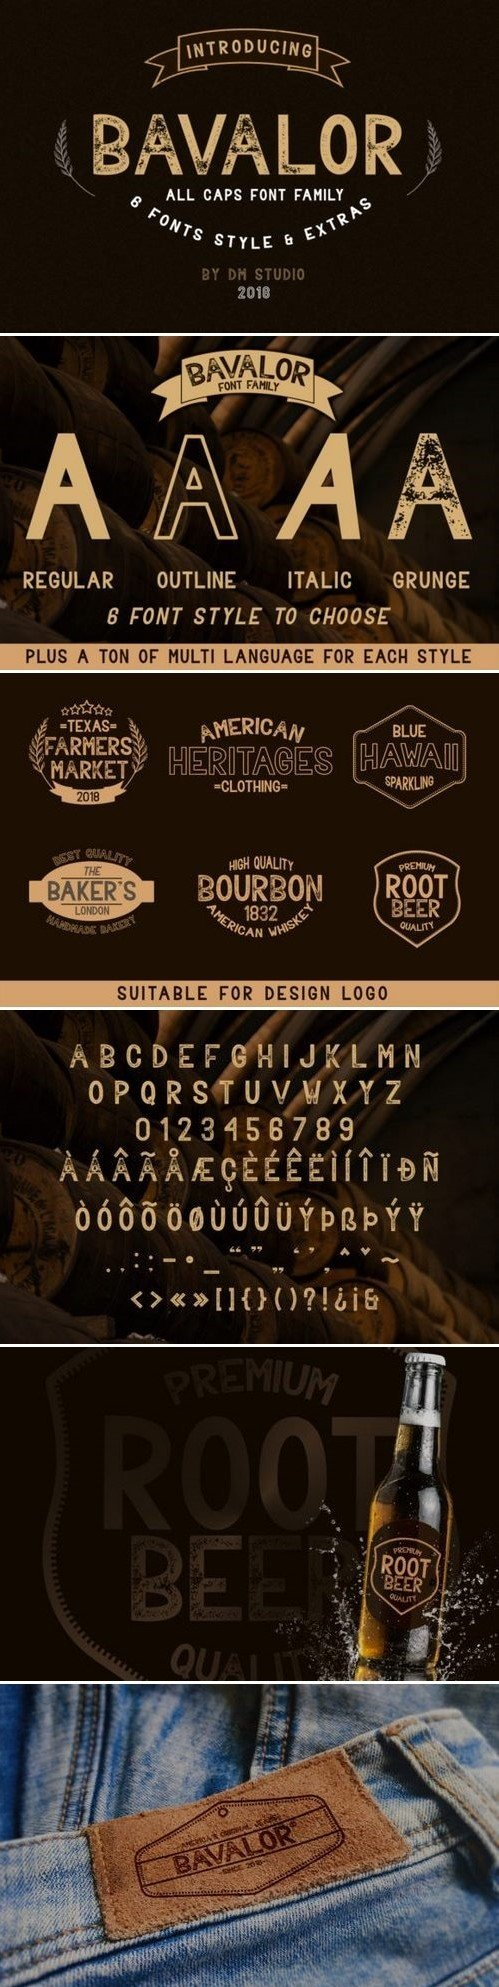 Fontbundles - Bavalor - All Caps Font Family with Extras 185575